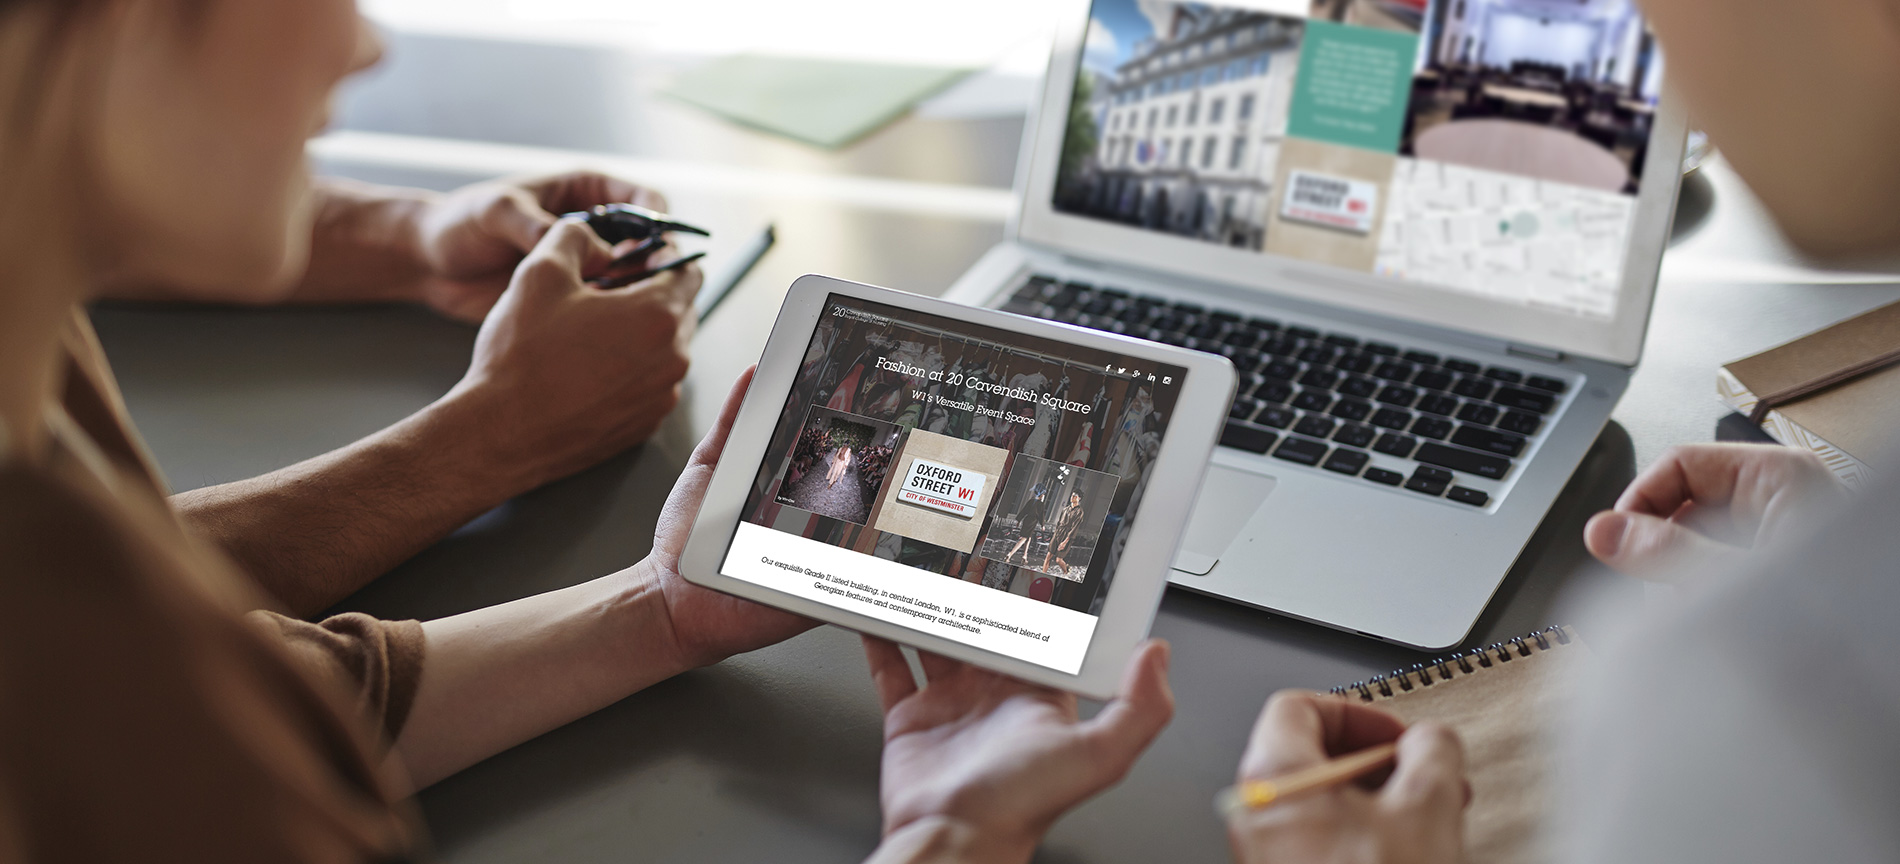 The Fashion Campaign landing page on the 20 Cavendish Square website - desktop